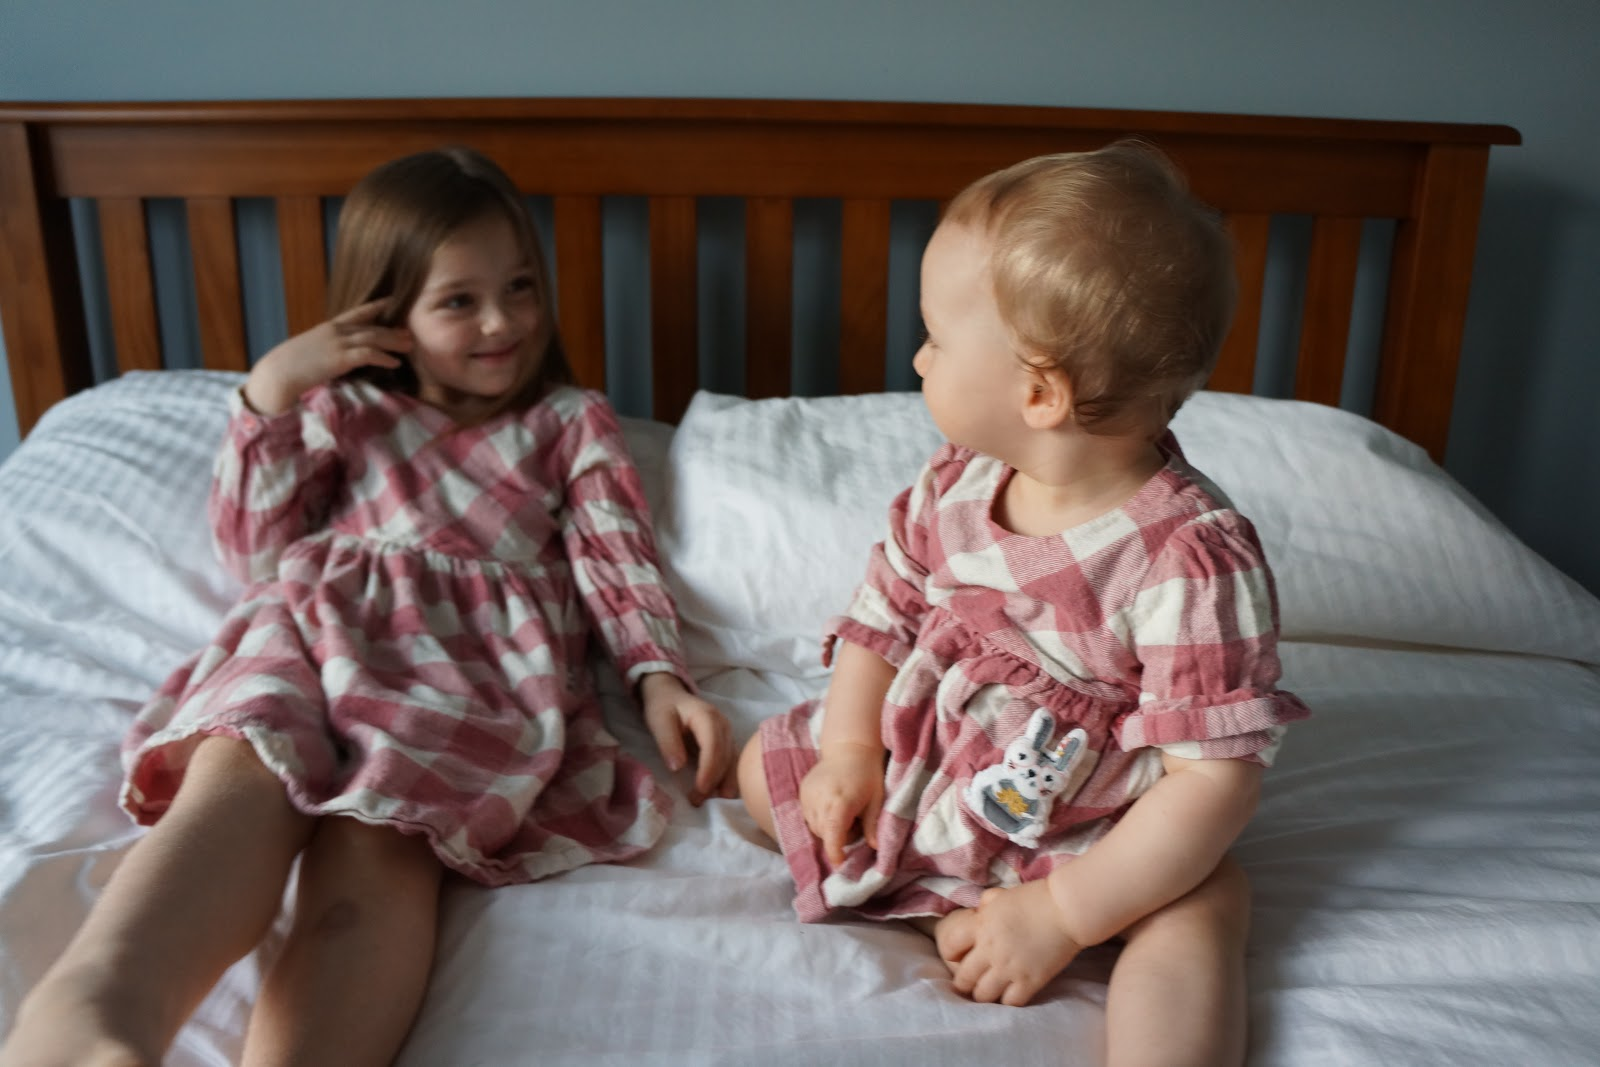 baby and sister in matching outfits looking at each other